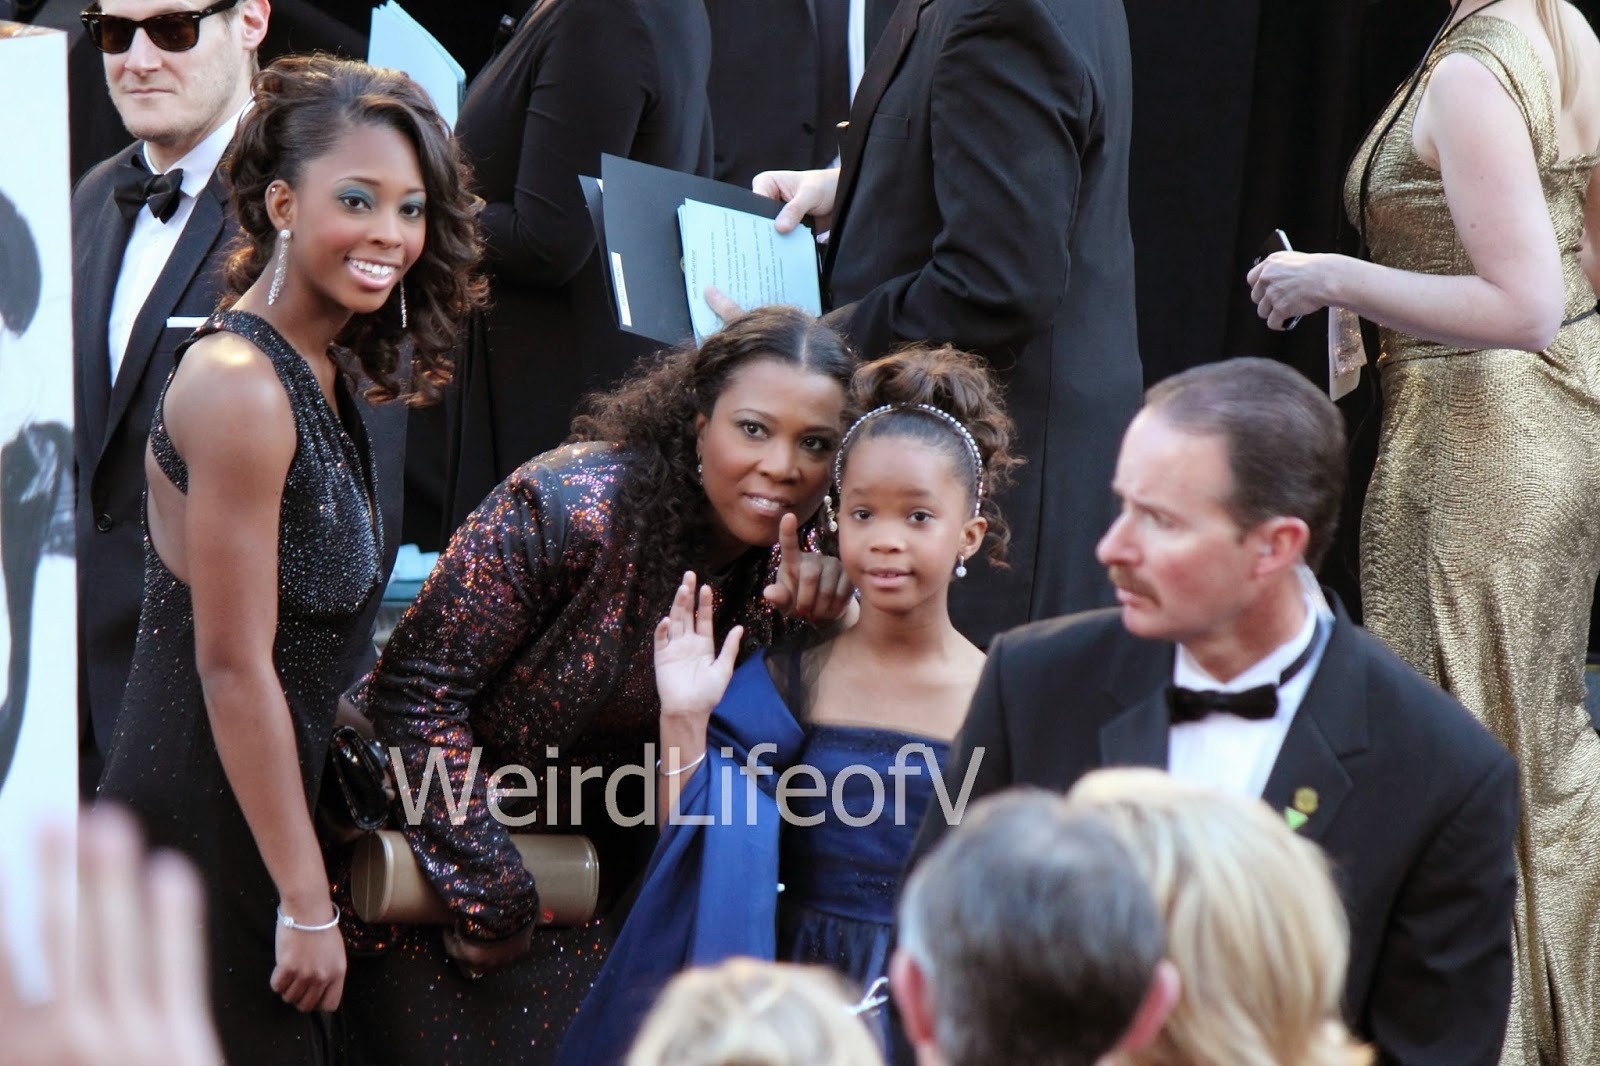 Quvenzhane Wallis shyly waves to the fans